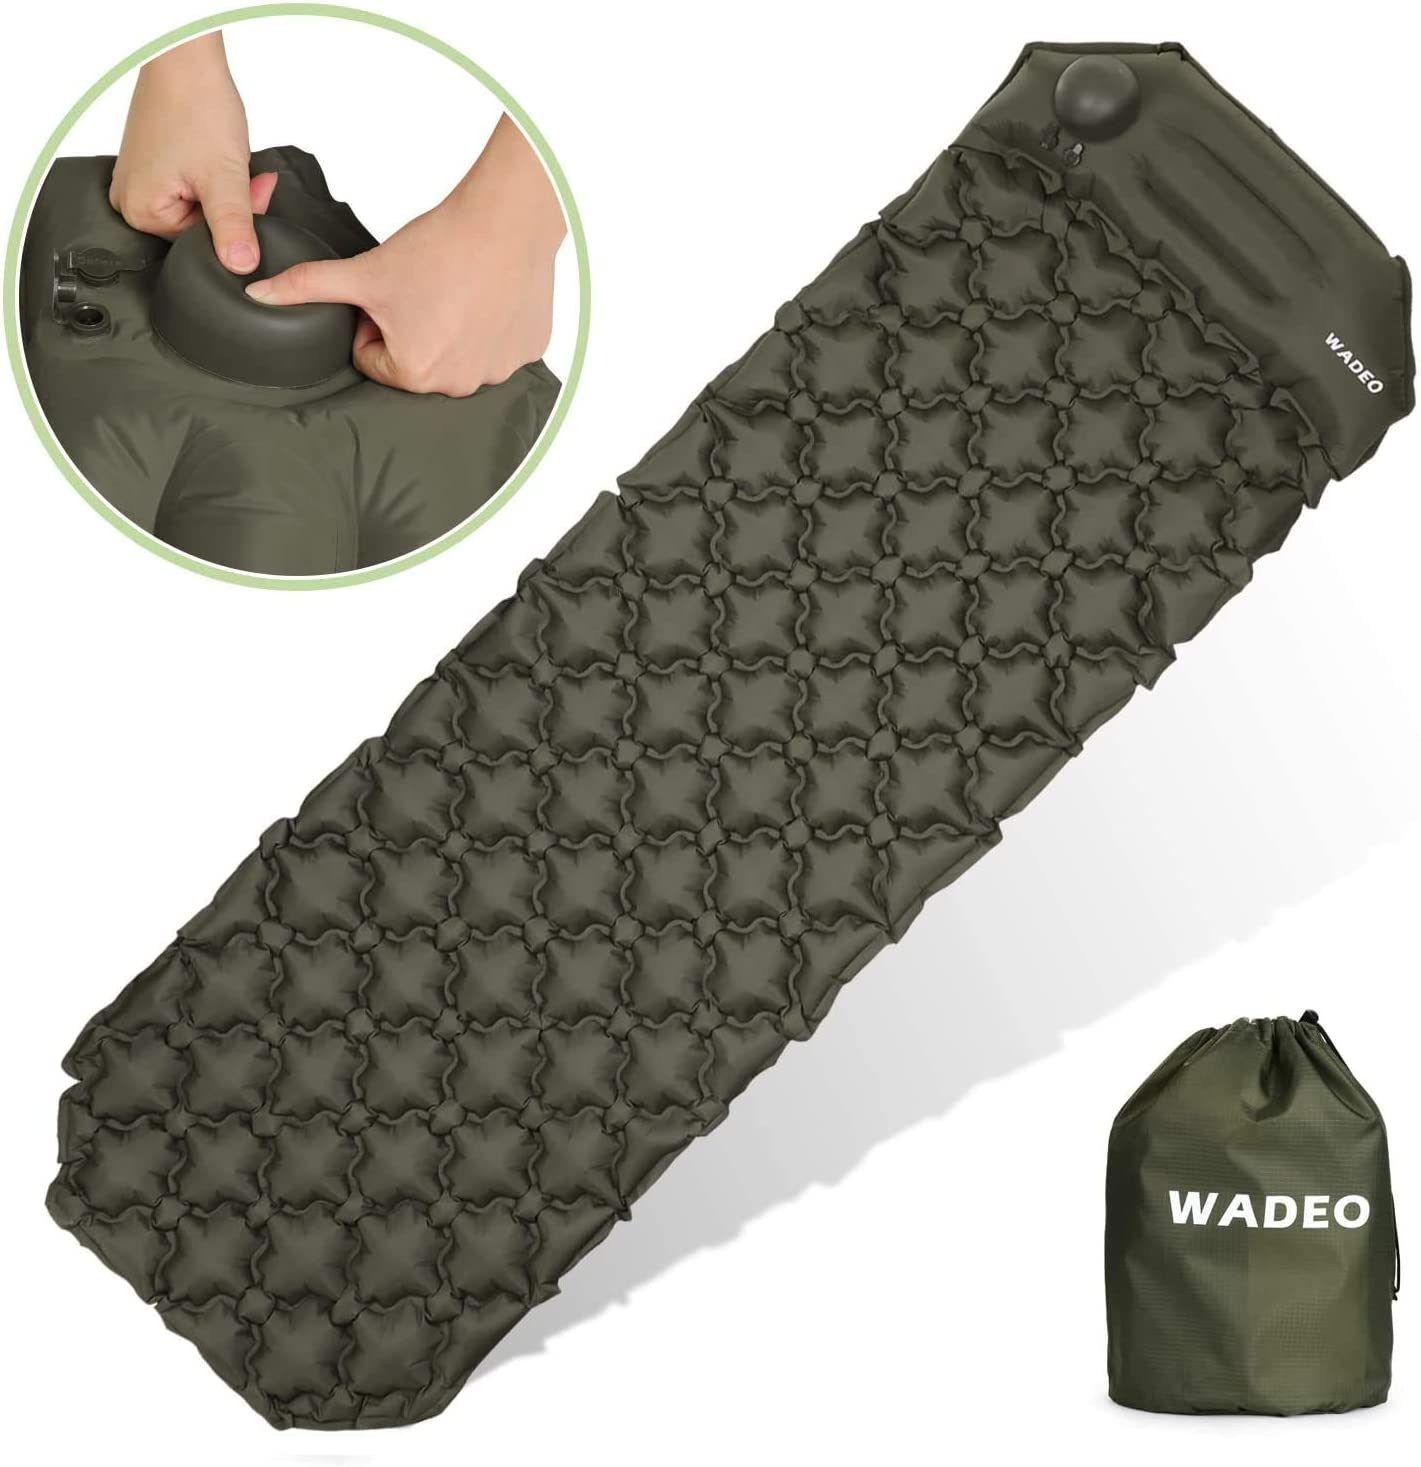 WADEO Self Inflating Camping Sleeping Pads, Ultralight Camping Mat Foldable Air Mattress Pads, Durable Waterproof Compact Inflatable Pads with Hand Press Pump and Pillow for Backpack, Travel